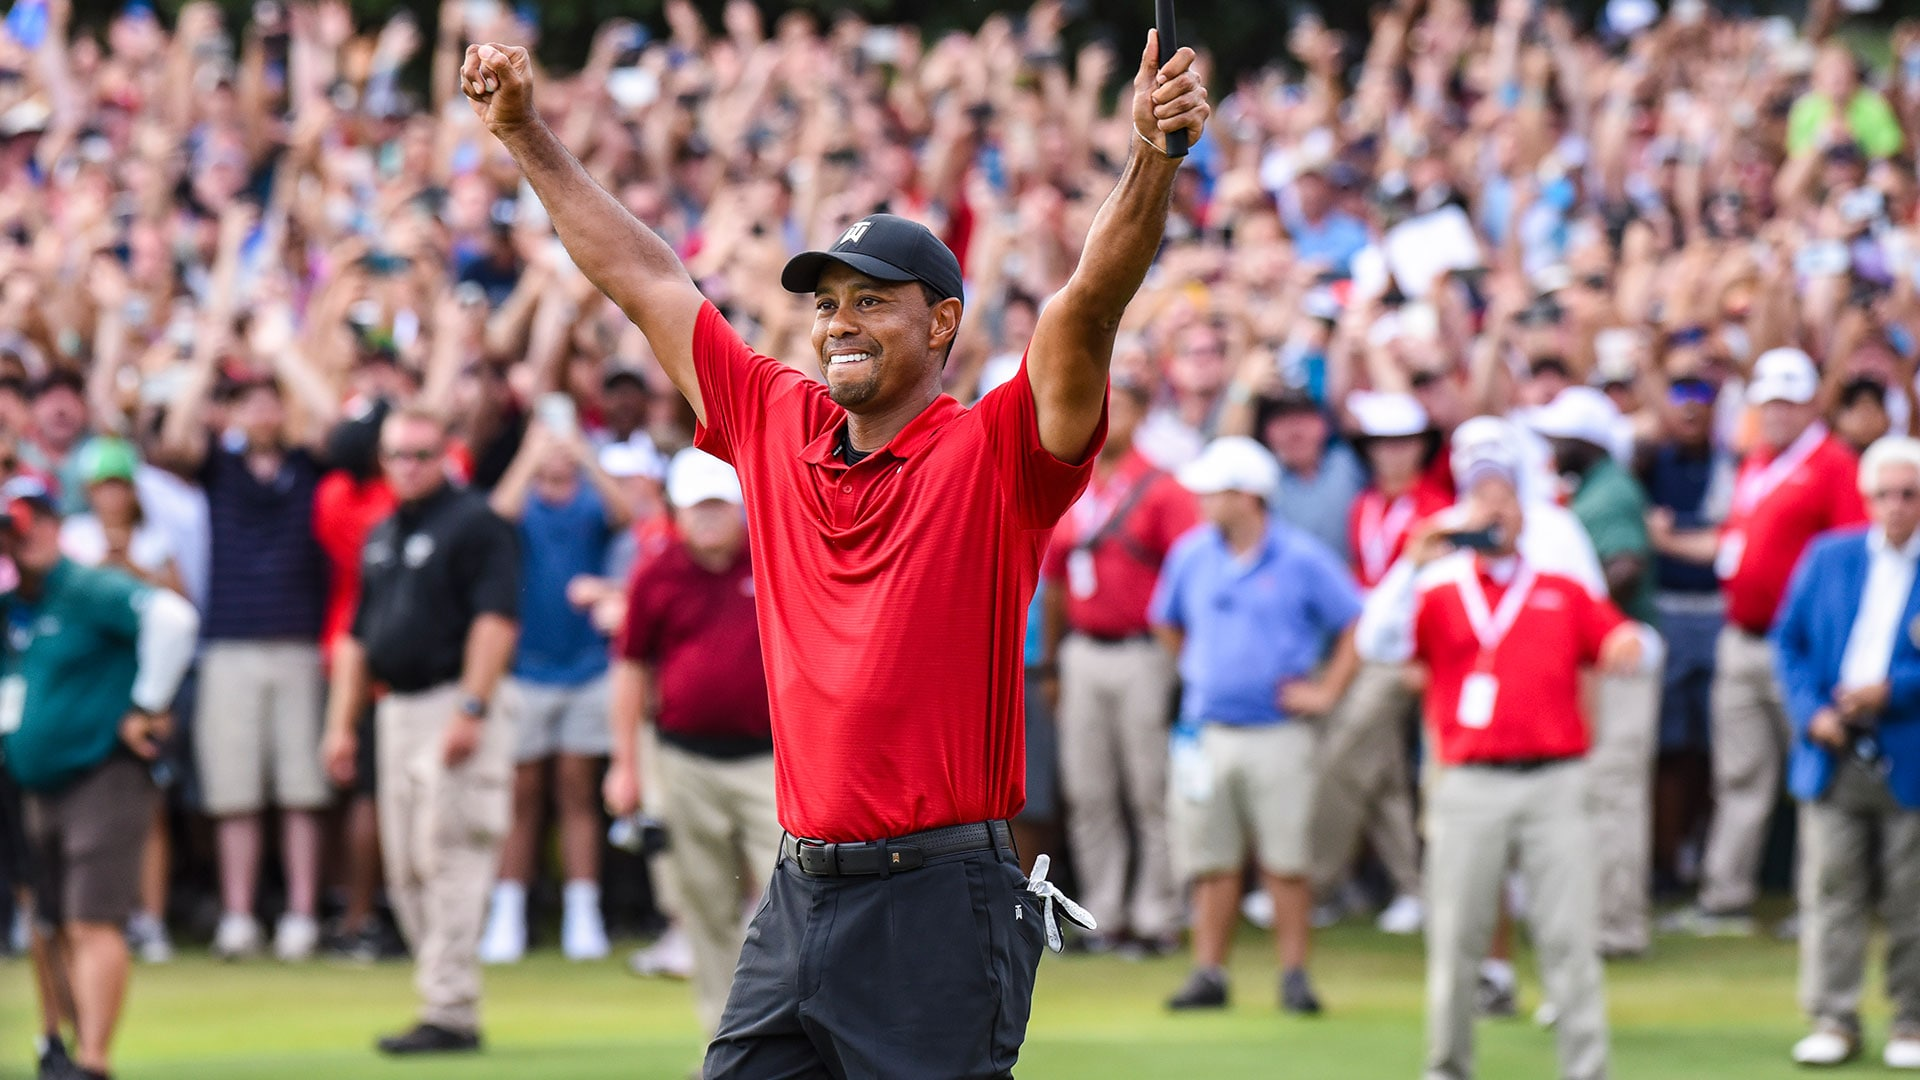 tiger woods caps 2018 season with win at tour championship